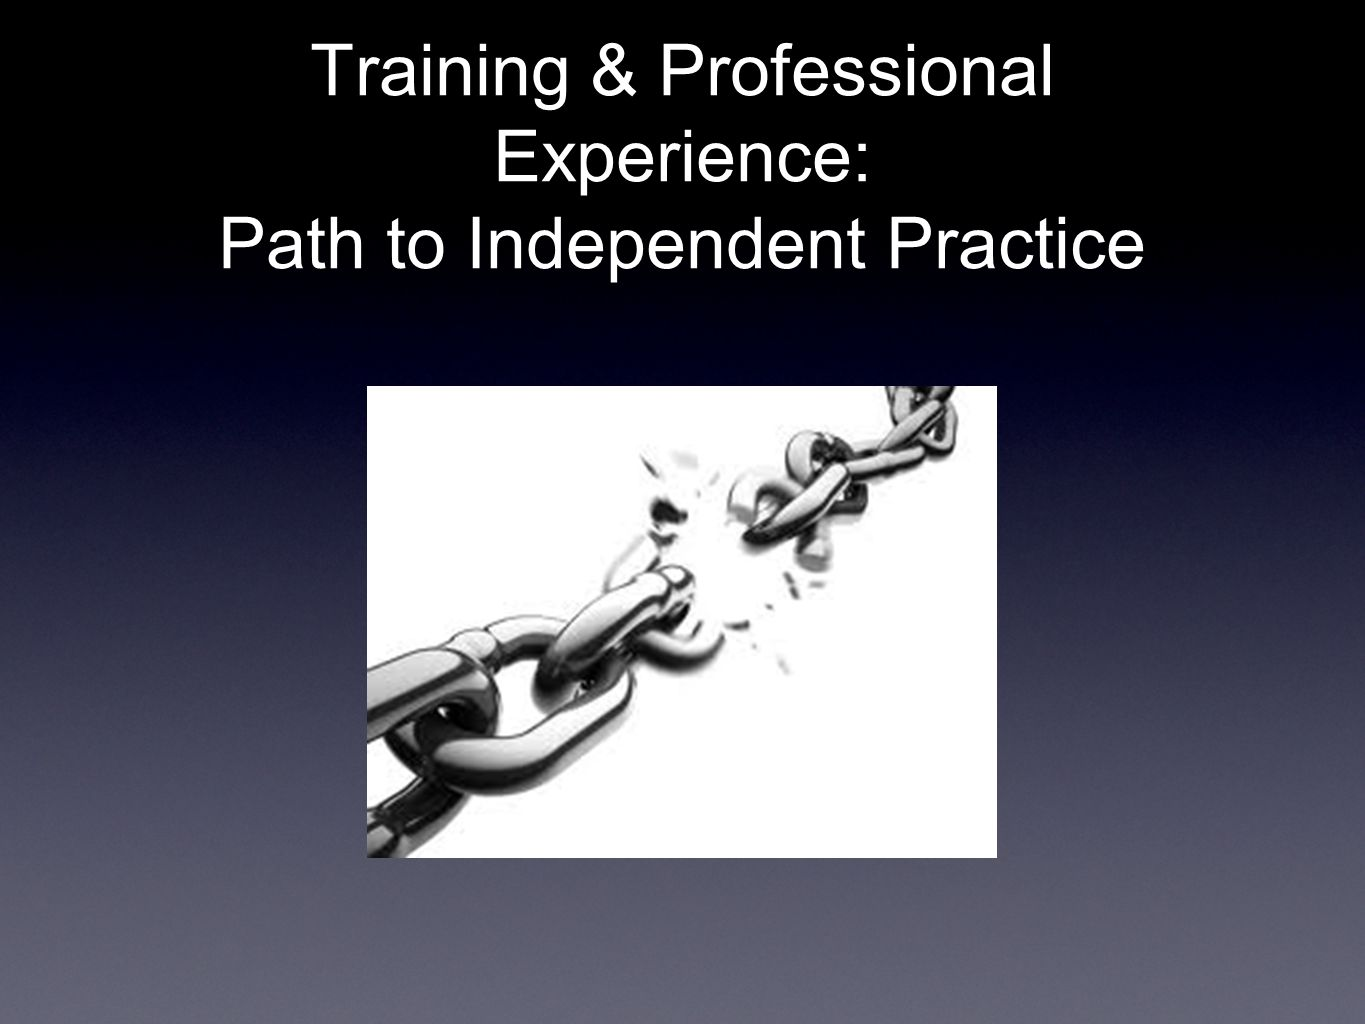 Training & Professional Experience: Path to Independent Practice